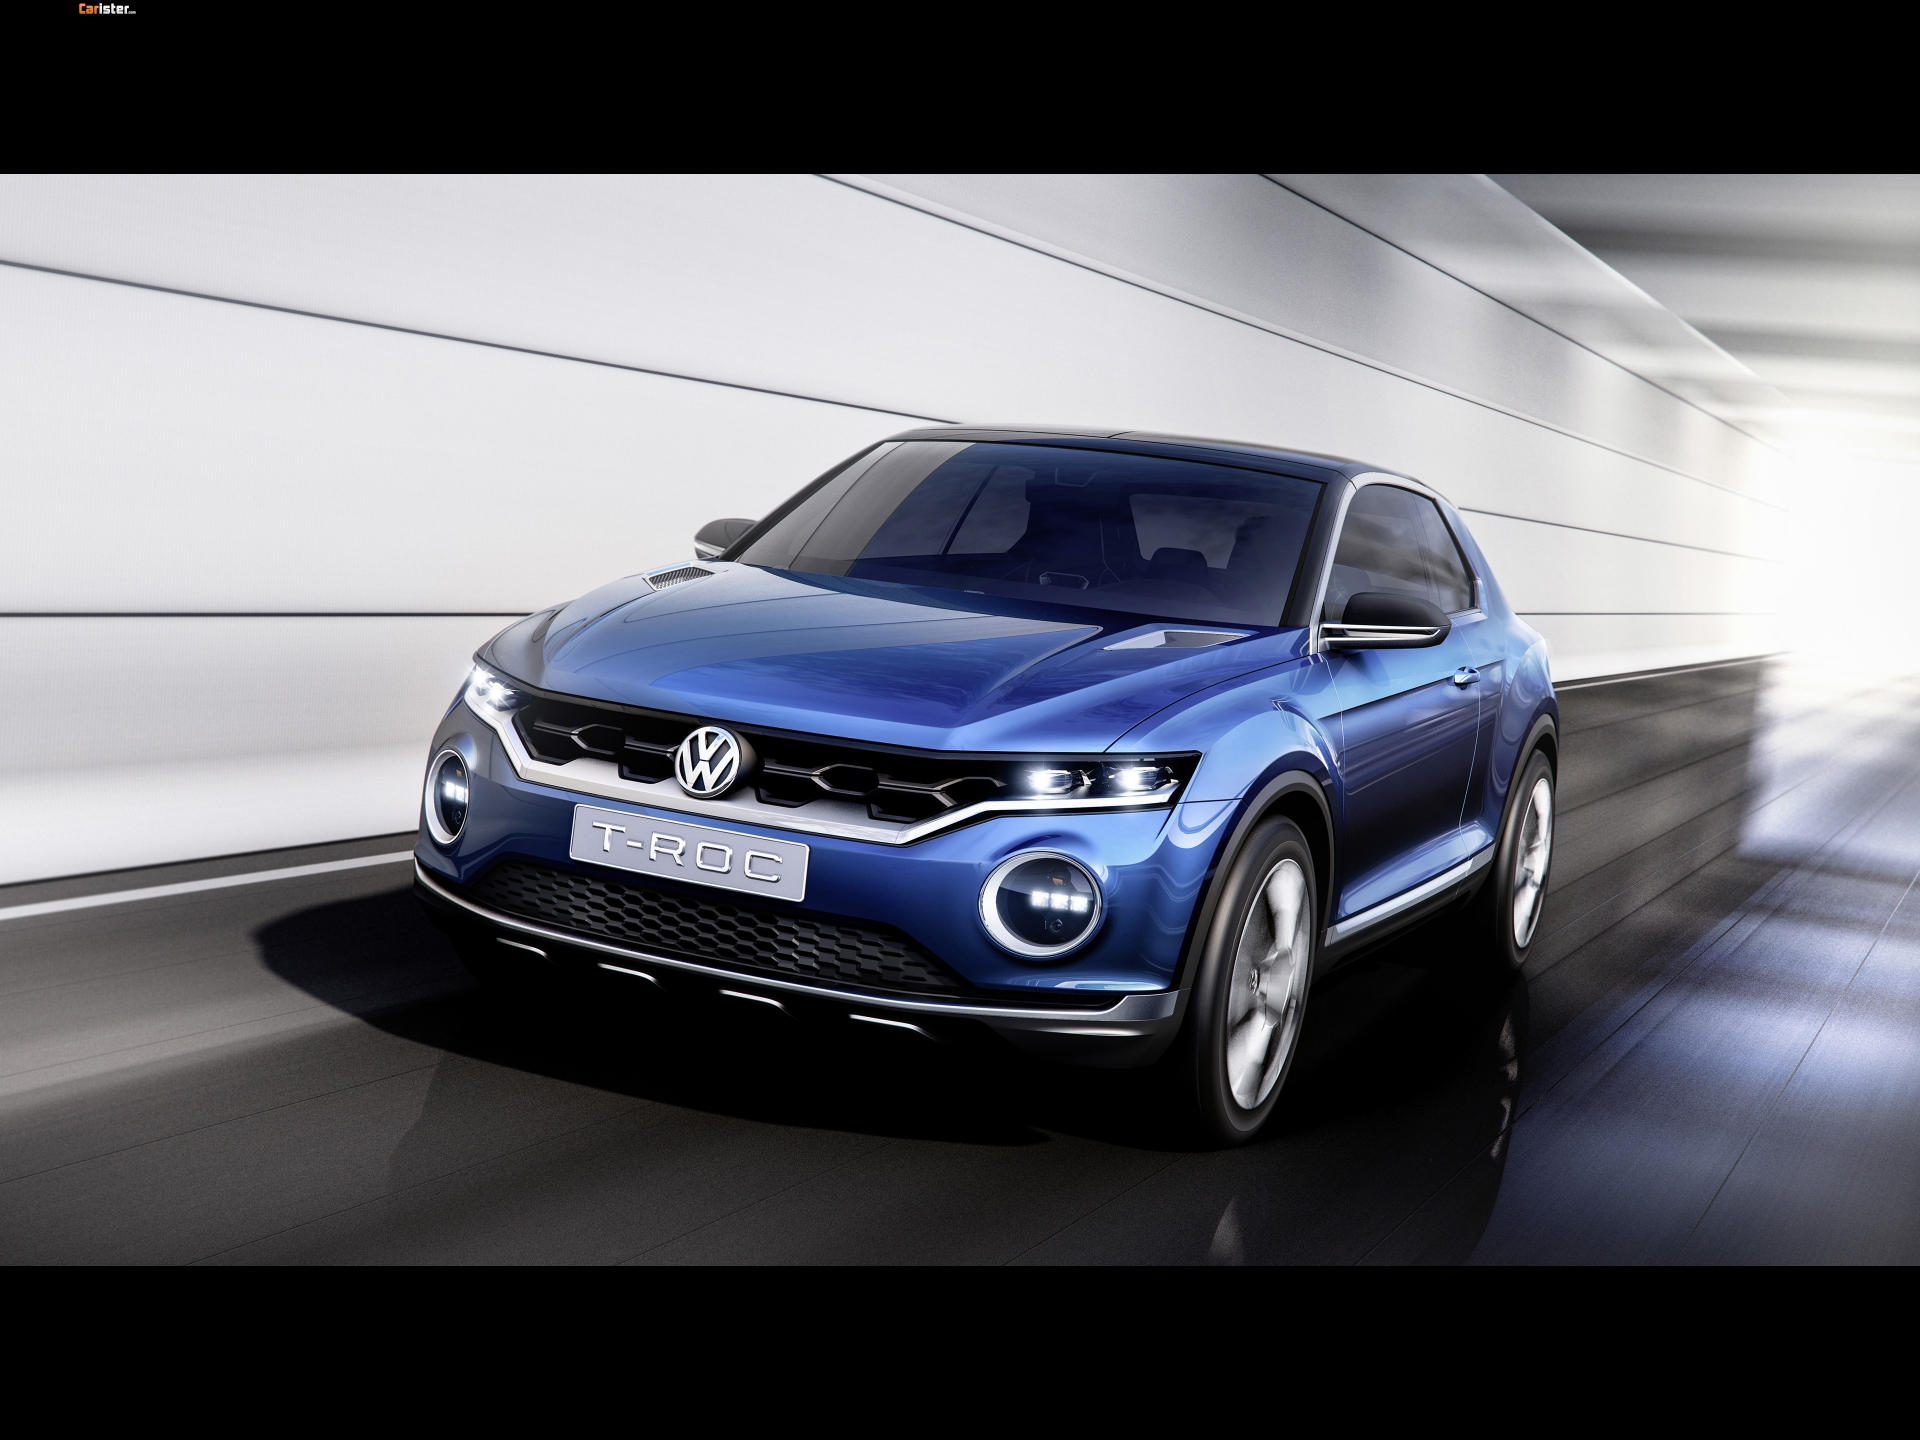 Volkswagen T-Roc Concept 2014 - Photo 01 - Taille: 1920x1440